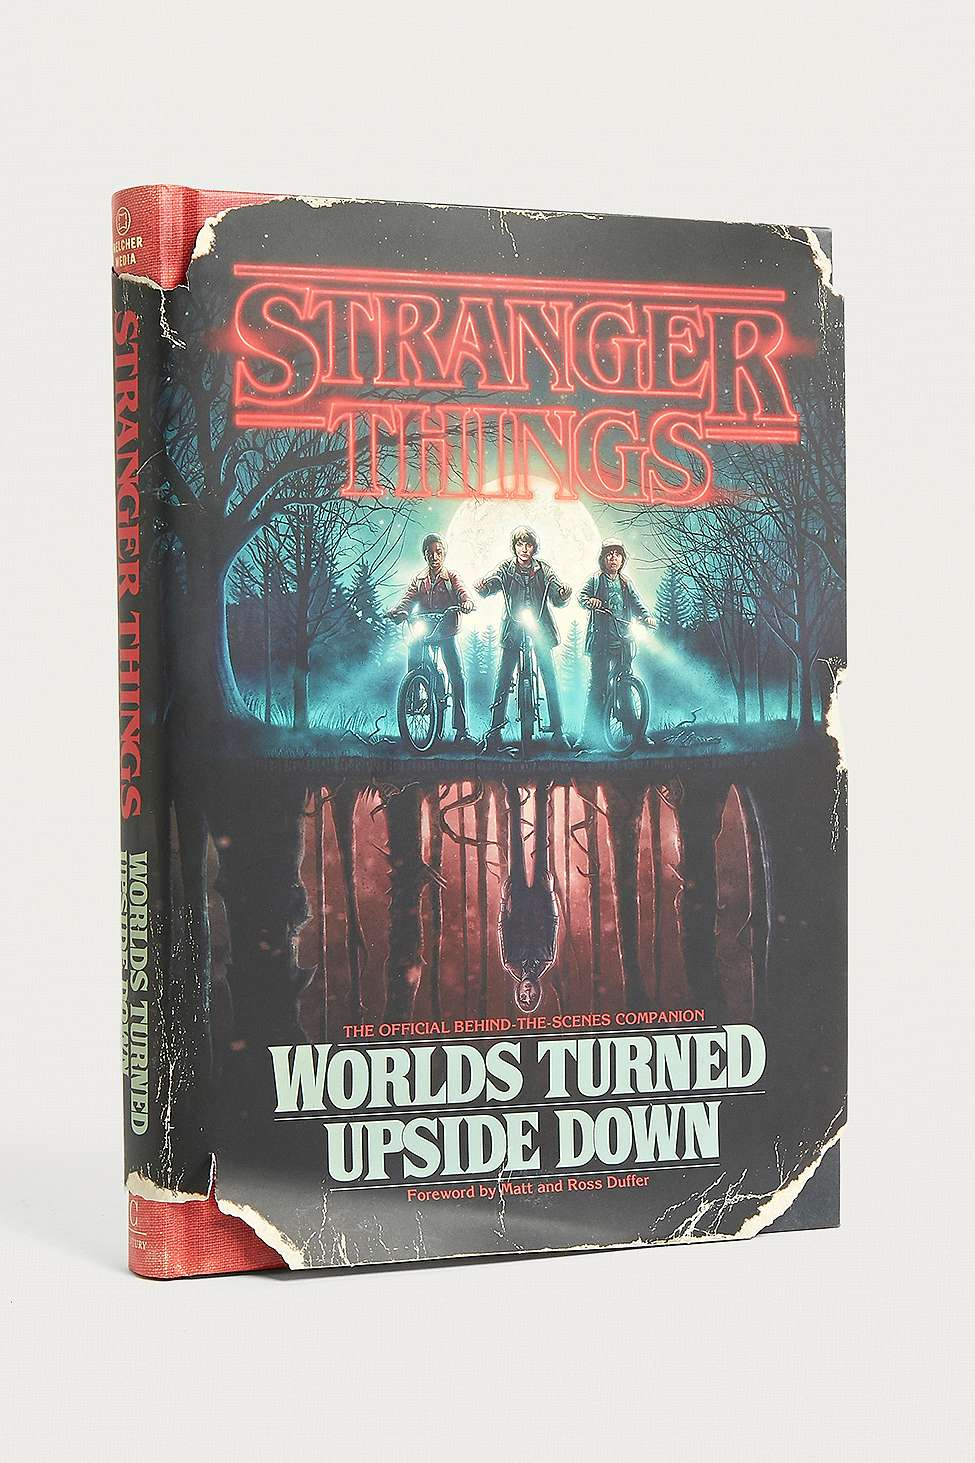 Slide View: 1: Stranger Things: Worlds Turned Upside Down: The Official Behind-the-Scenes Companion parGina McIntyre